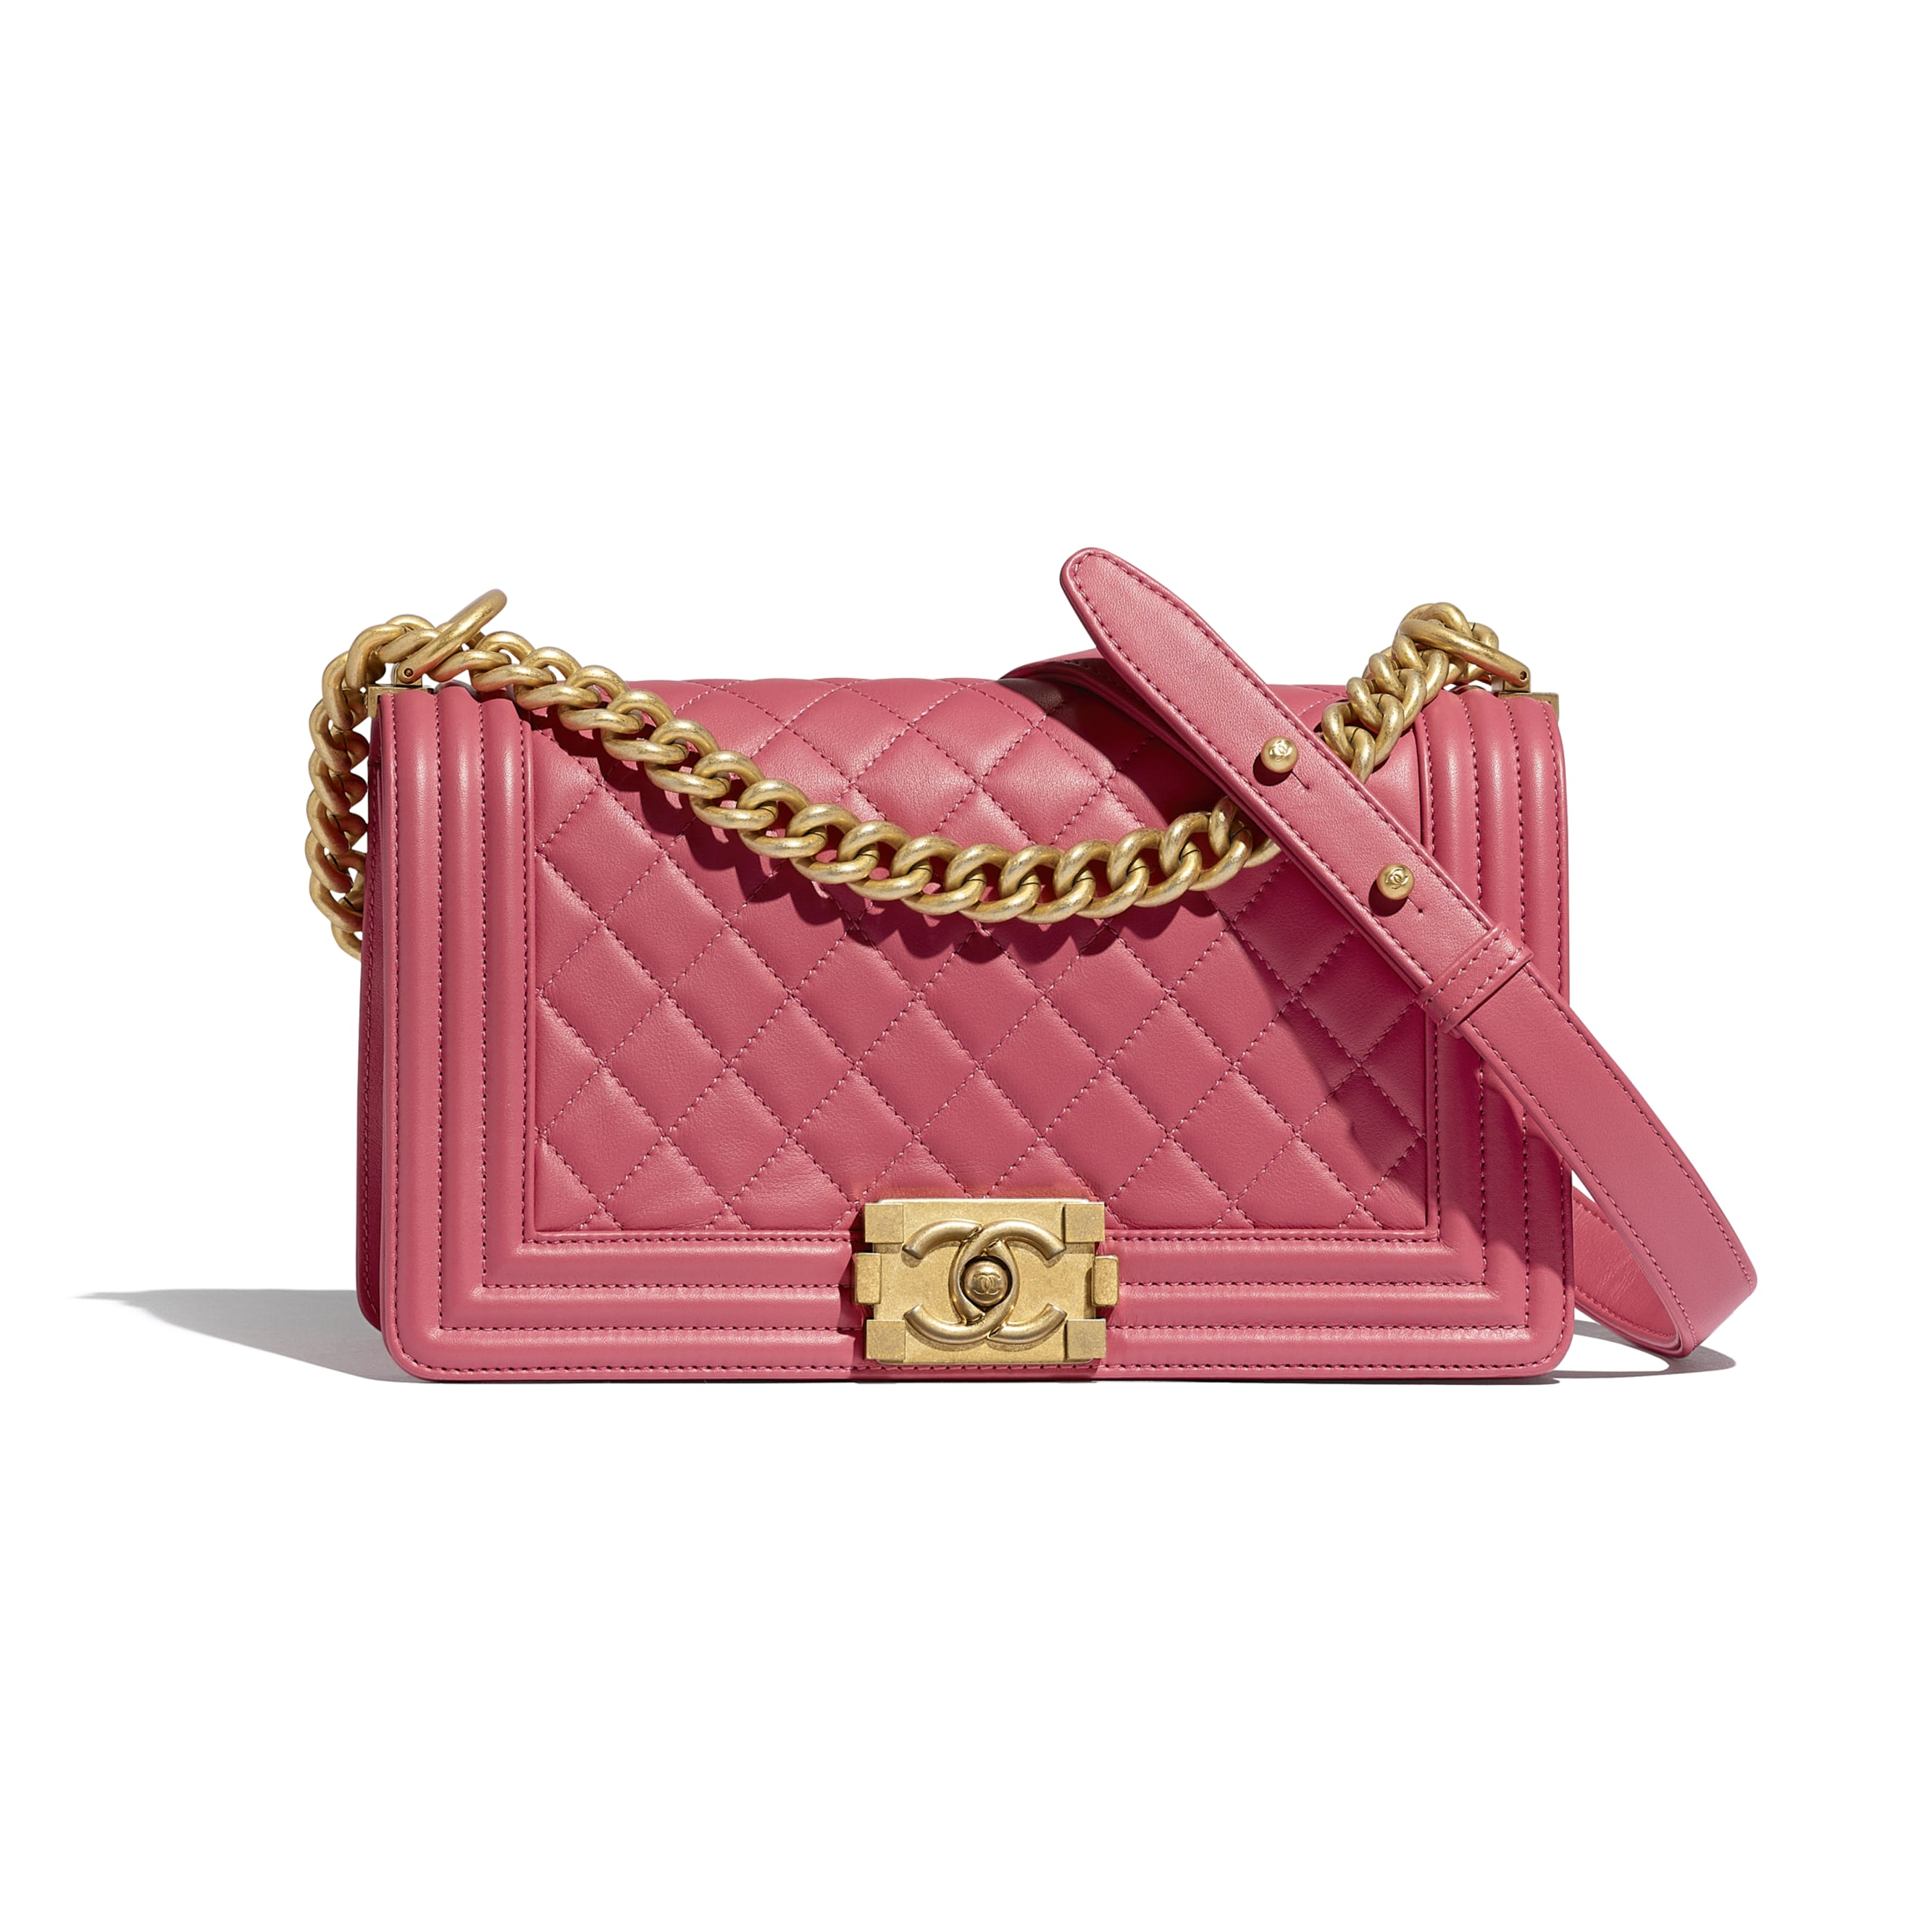 BOY CHANEL Handbag - Pink - Calfskin & Gold-Tone Metal - CHANEL - Default view - see standard sized version